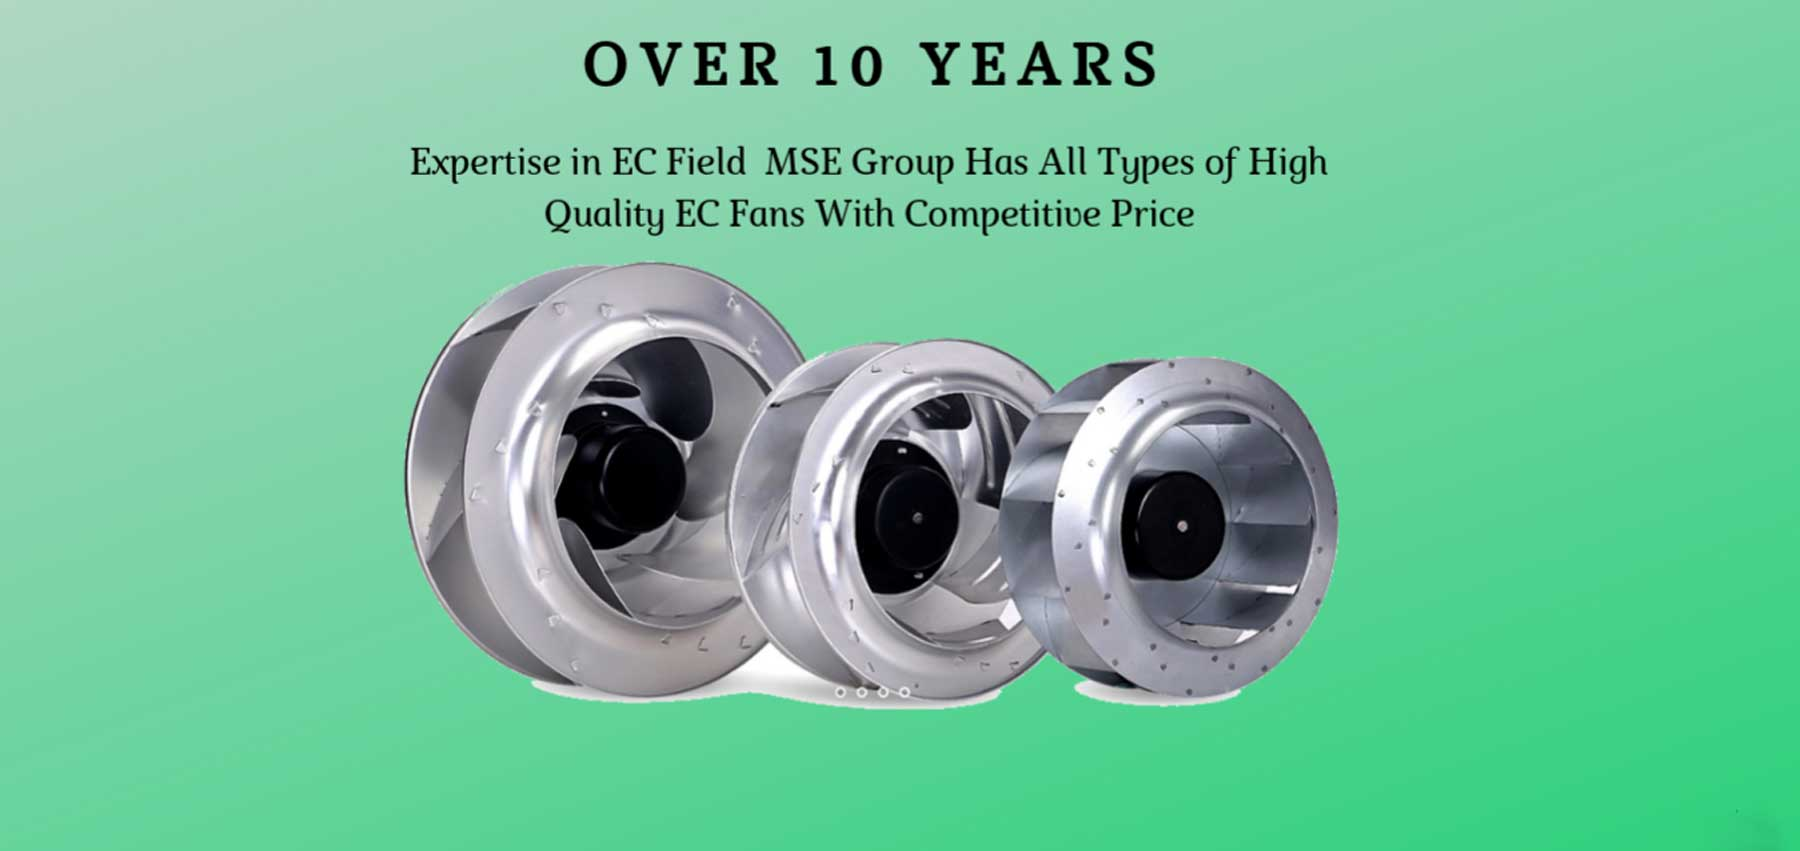 msefanblower - blower manufacturers suppliers in delhi ncr